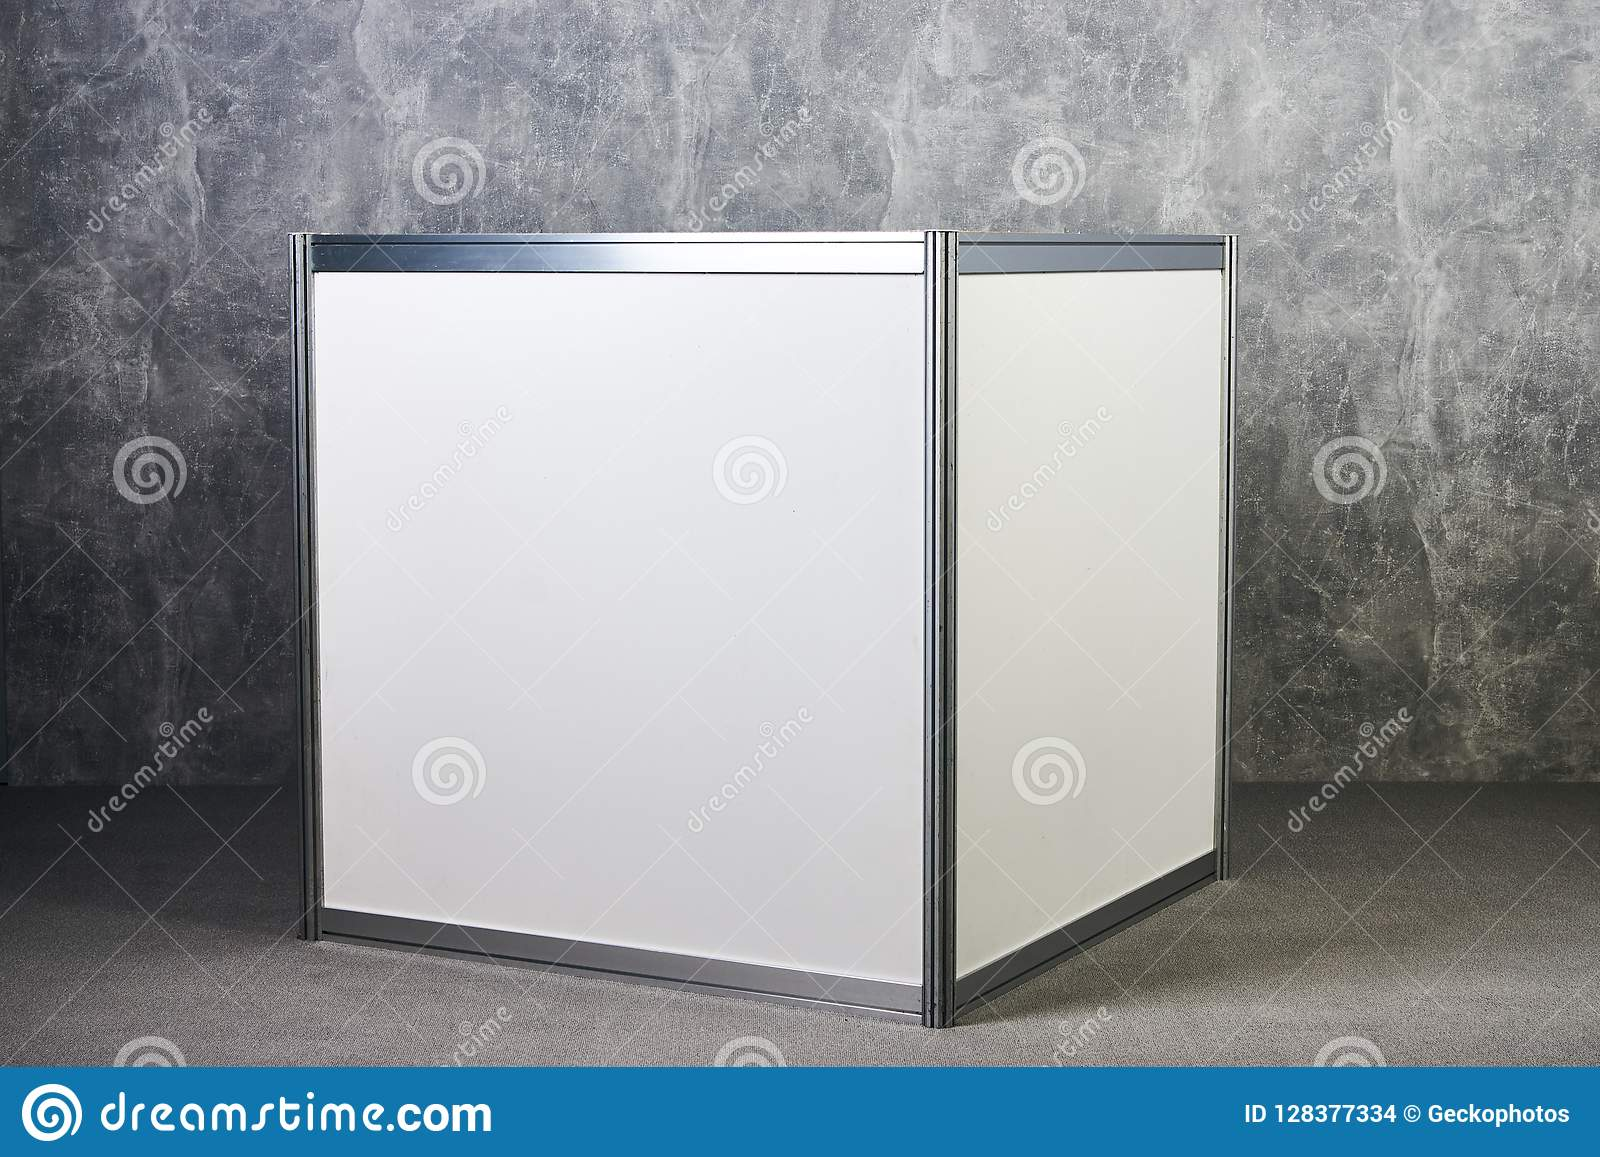 White glass showcase stand against gray textured wall background international exhibition furniture elements in large warehouse interior